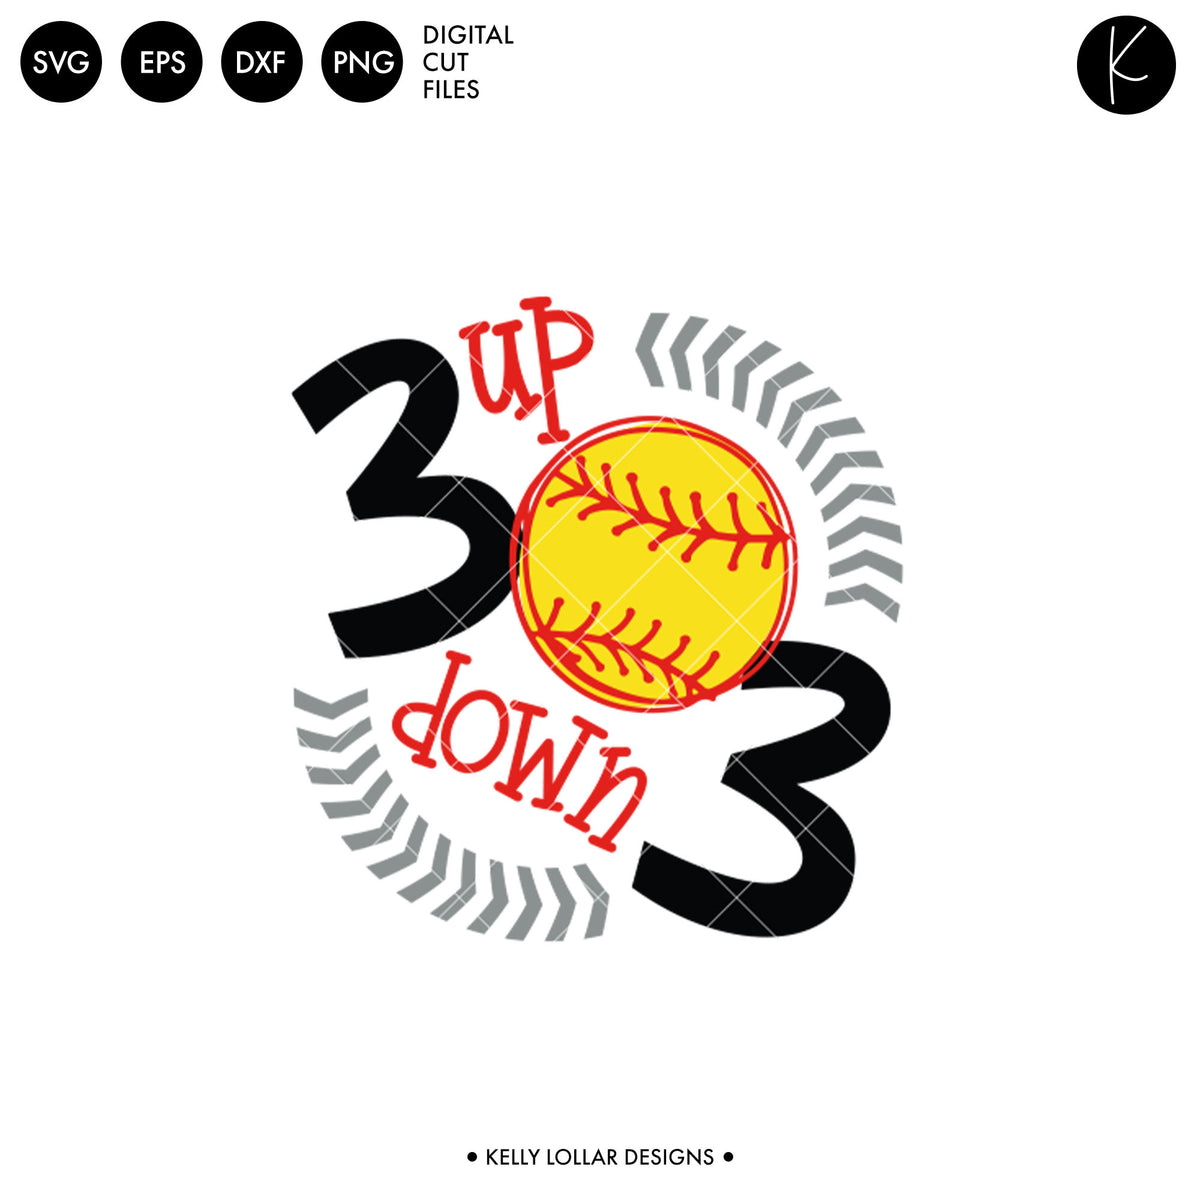 3 Up 3 Down Baseball or Softball | SVG DXF EPS PNG Cut Files